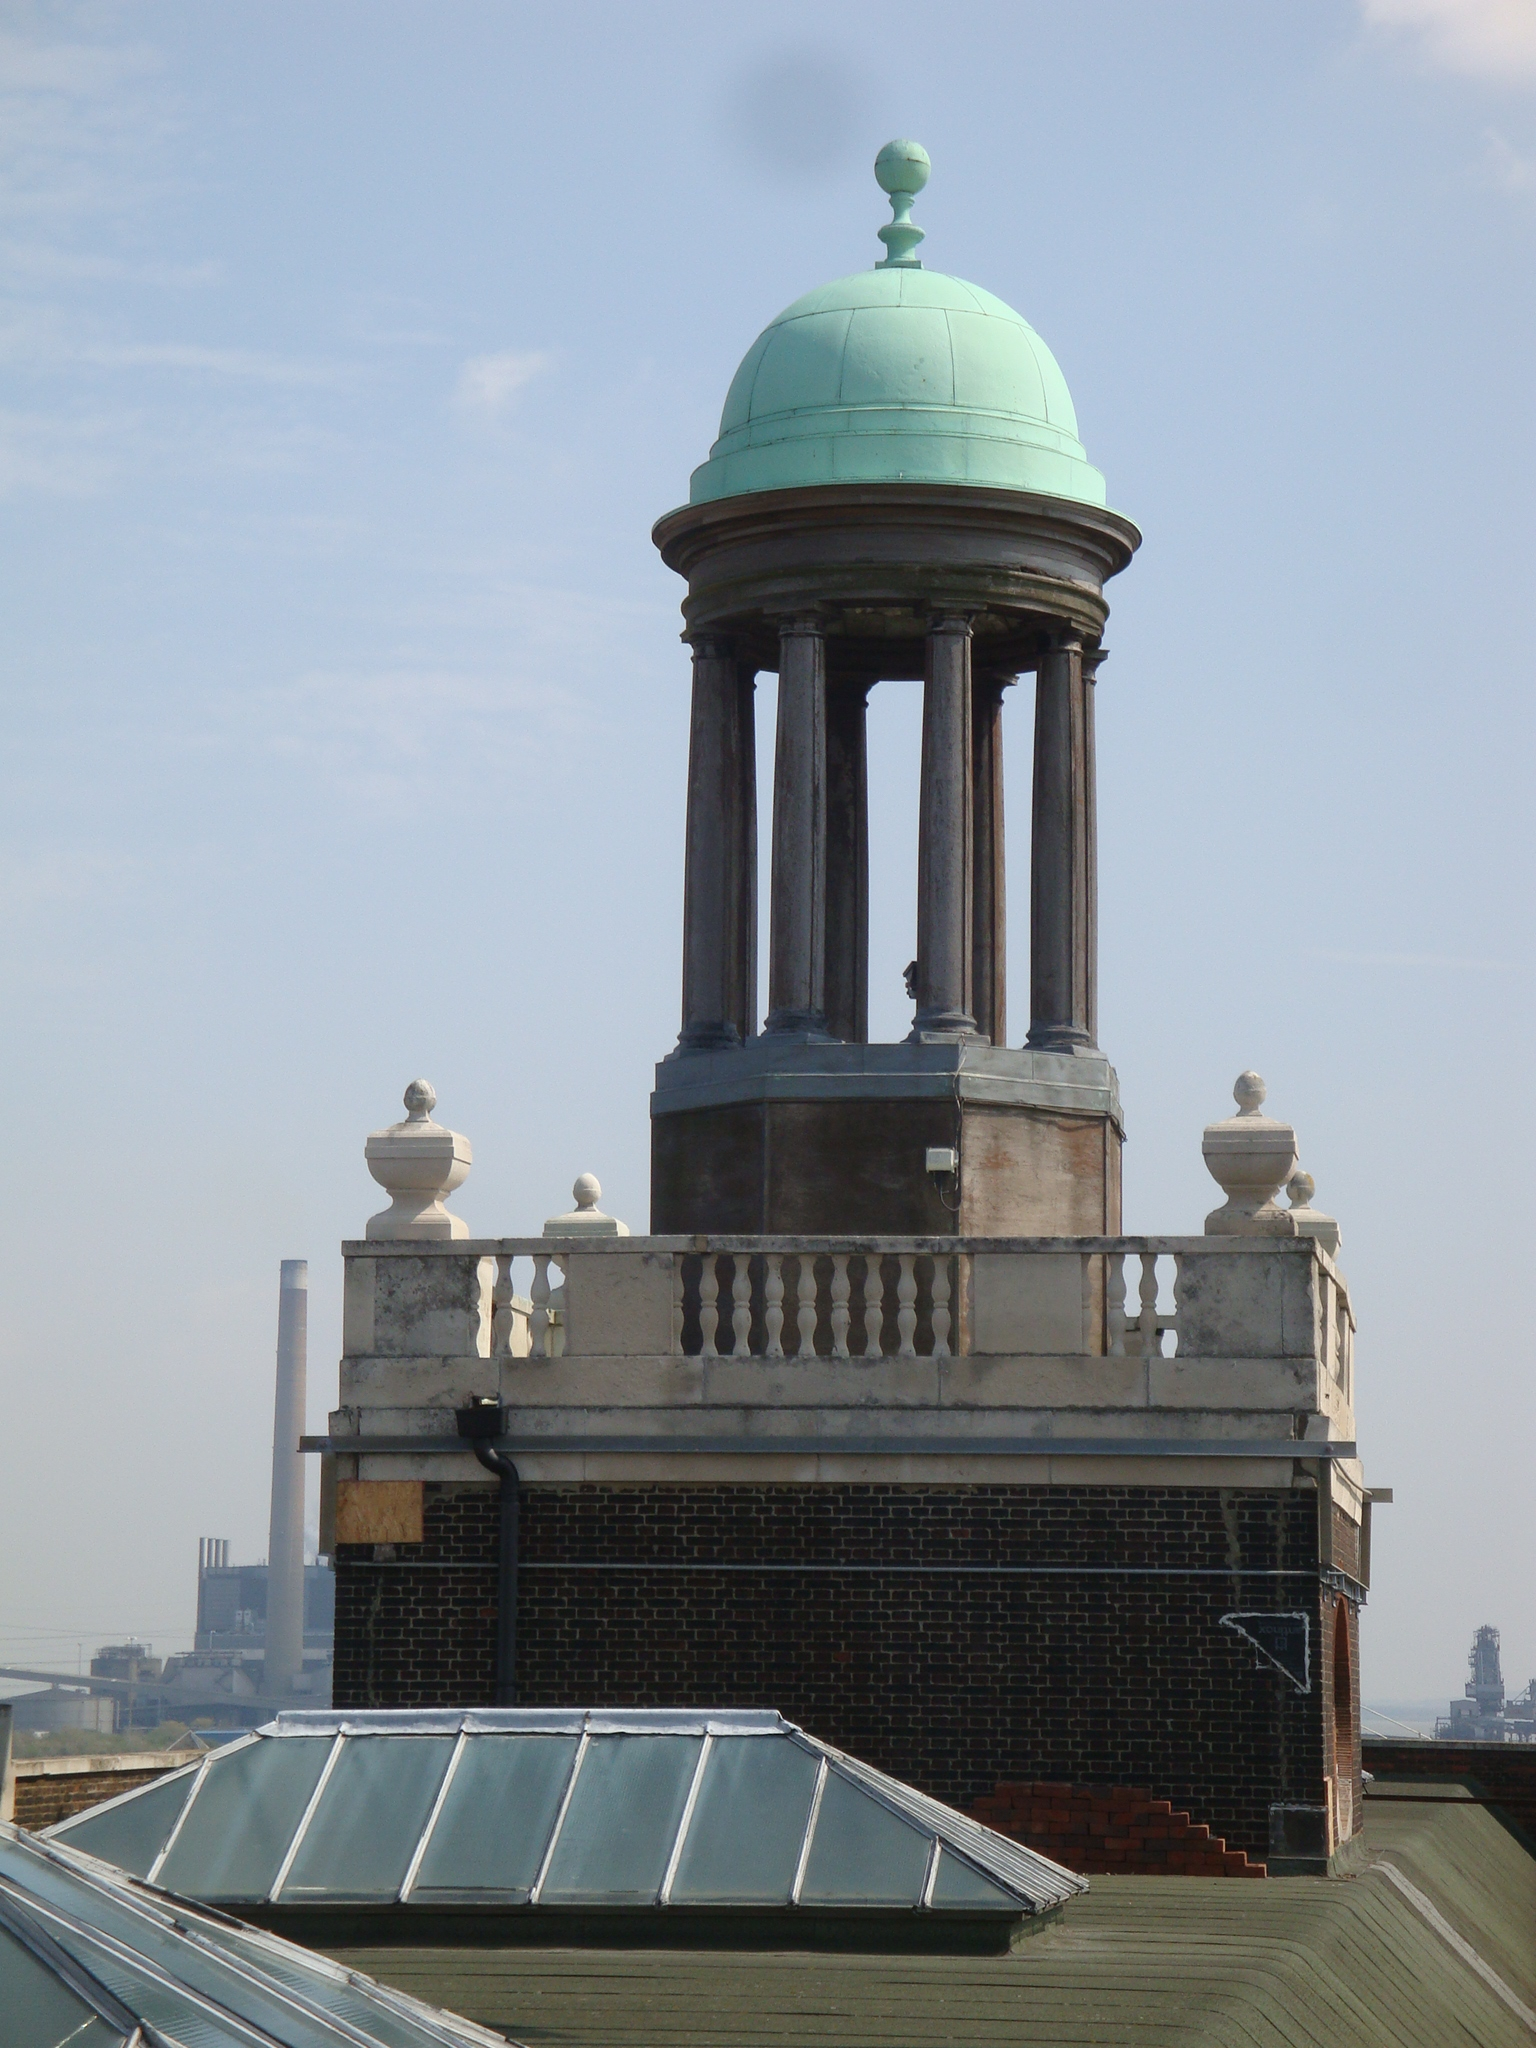 The cupola atop the London Cruise Terminal